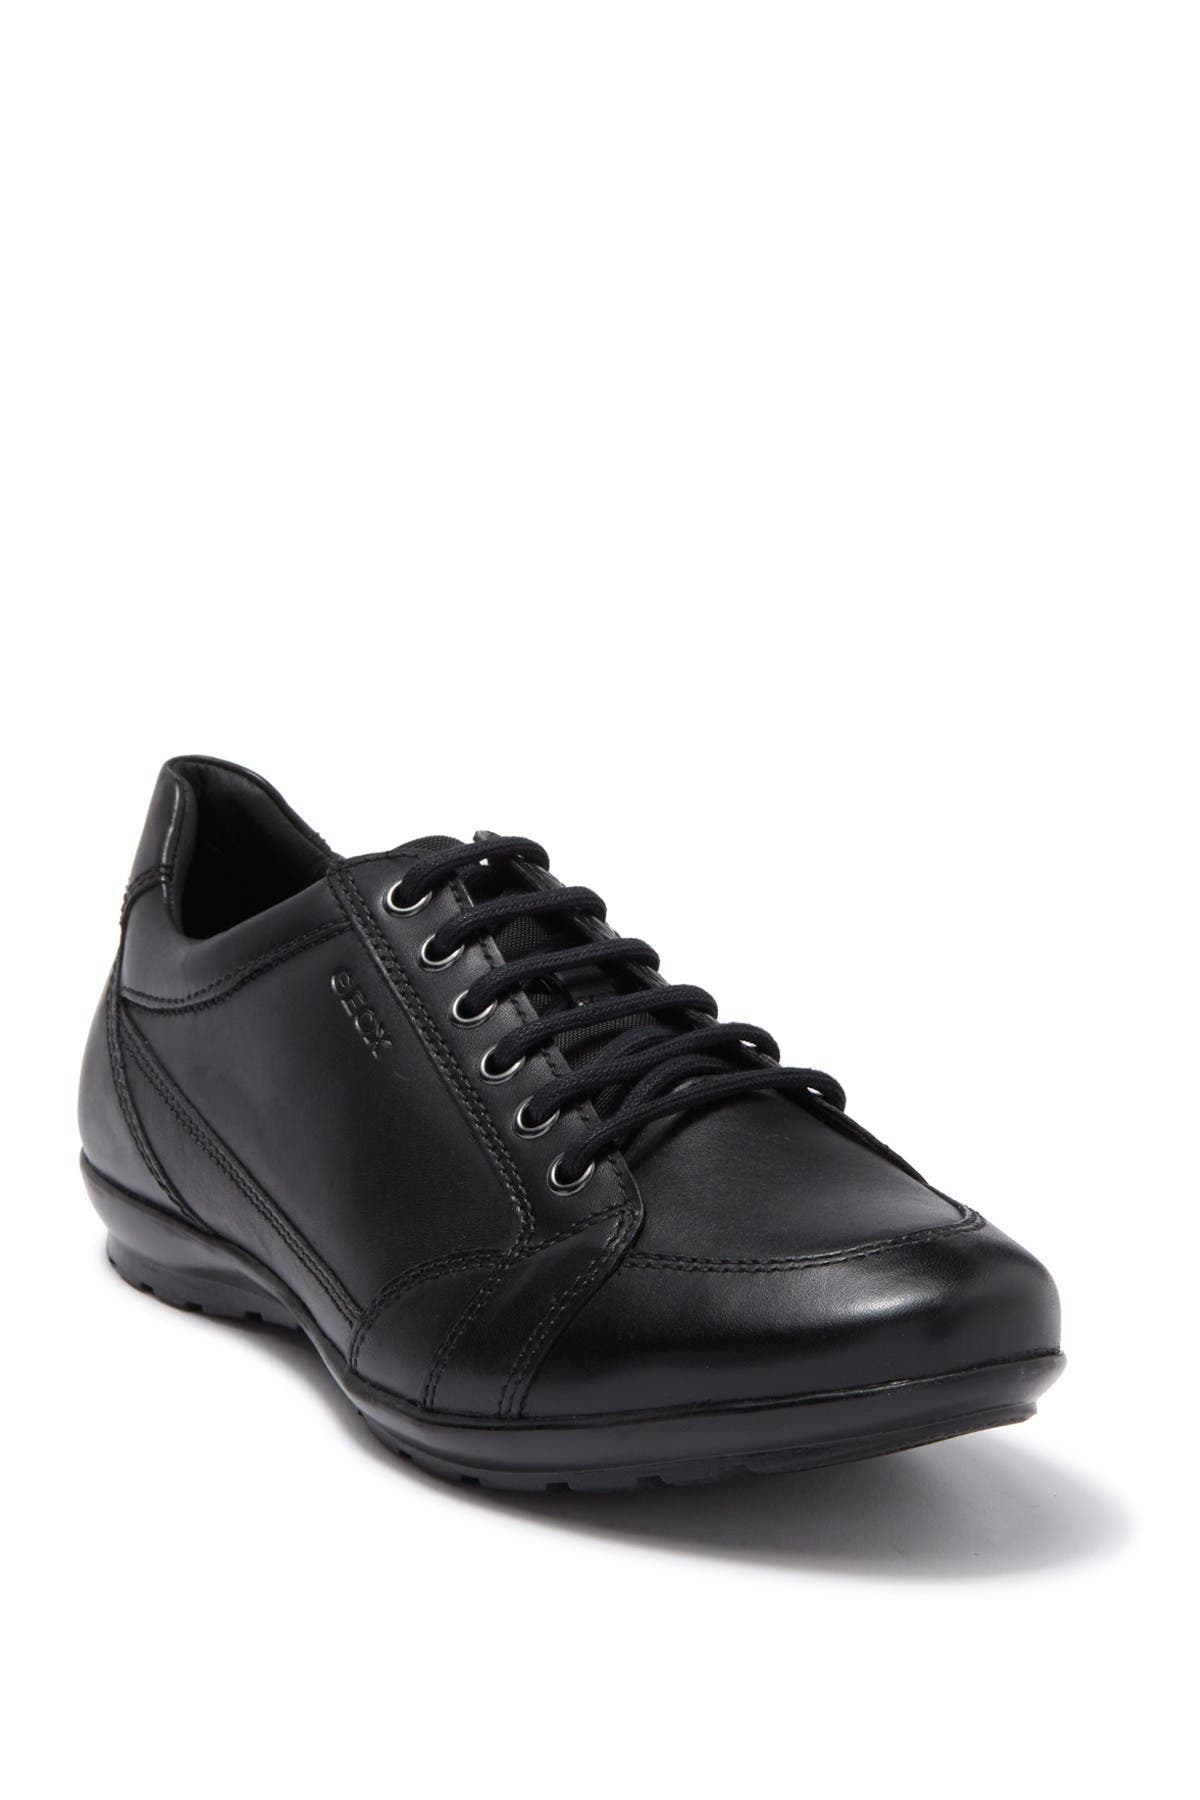 Image of GEOX Symbol Leather Sneaker